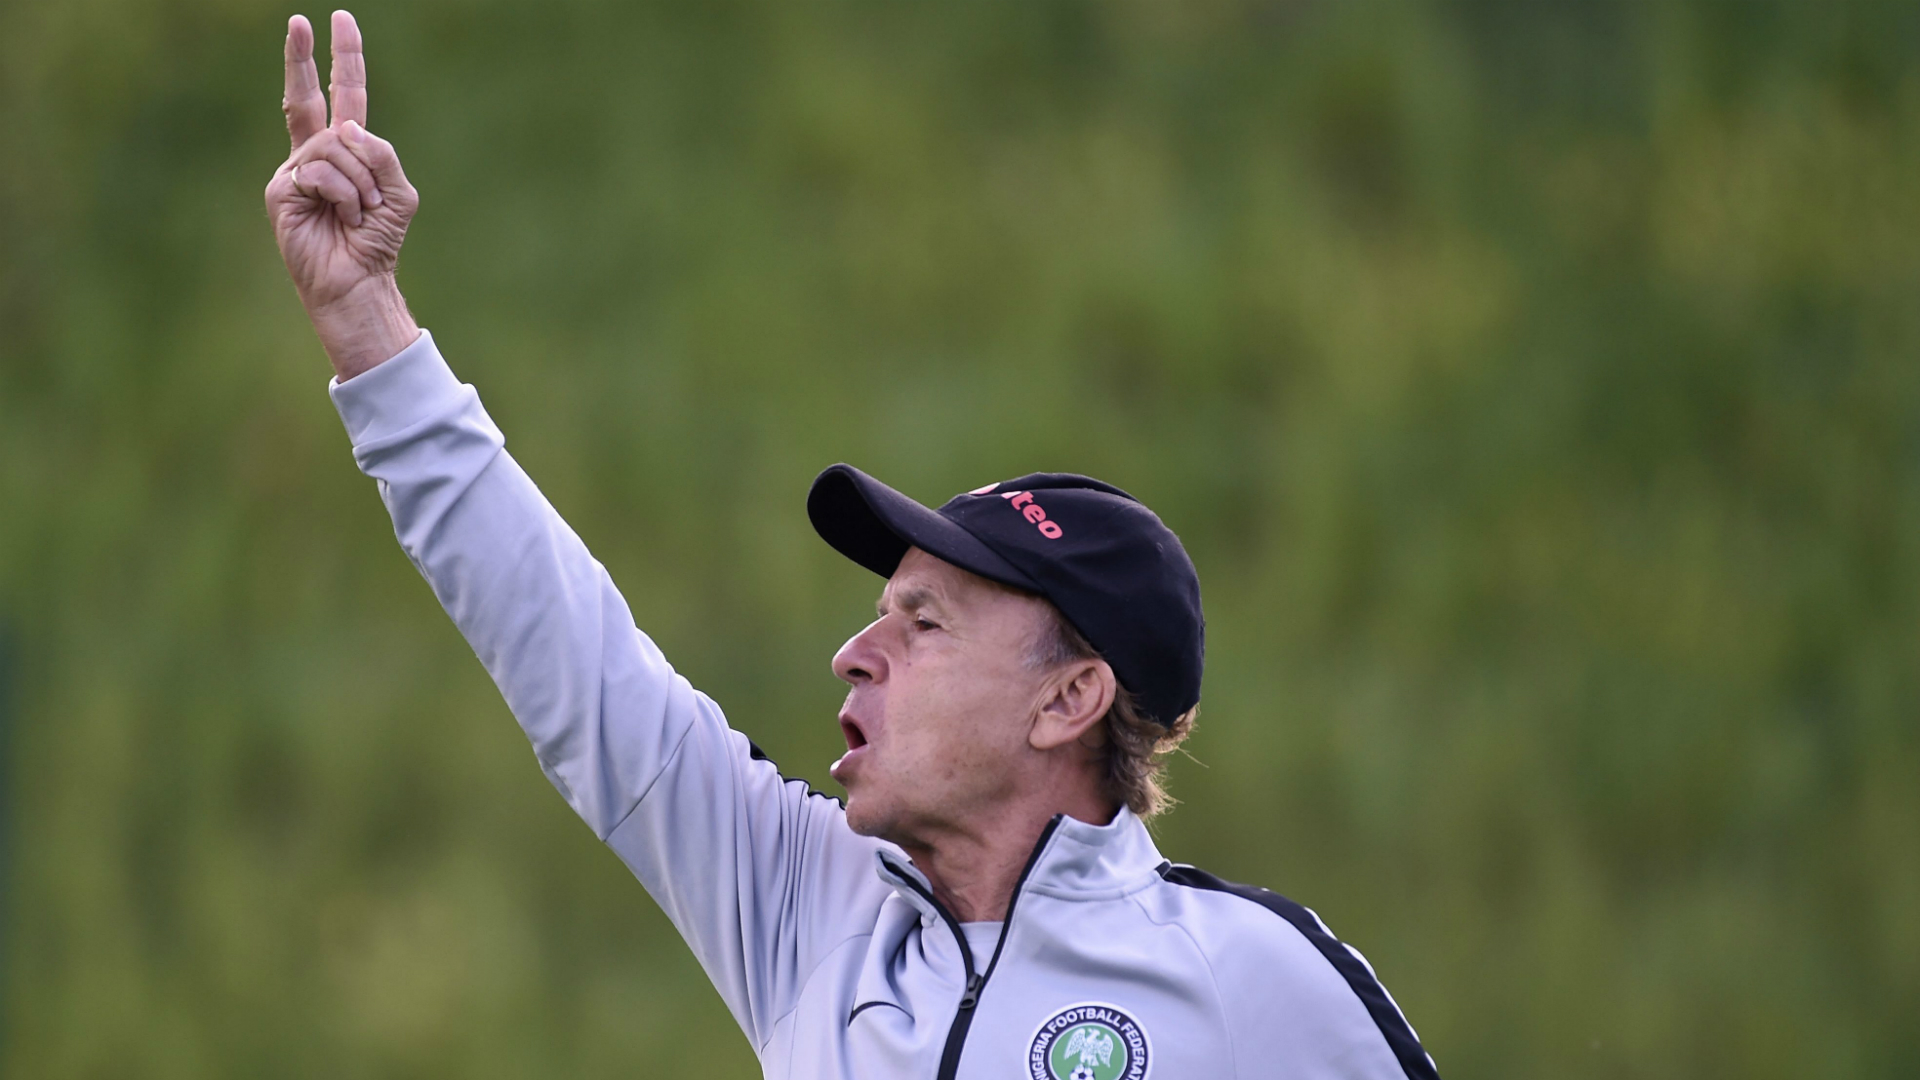 There is no pressure on Rohr to perform or quit, says NFF